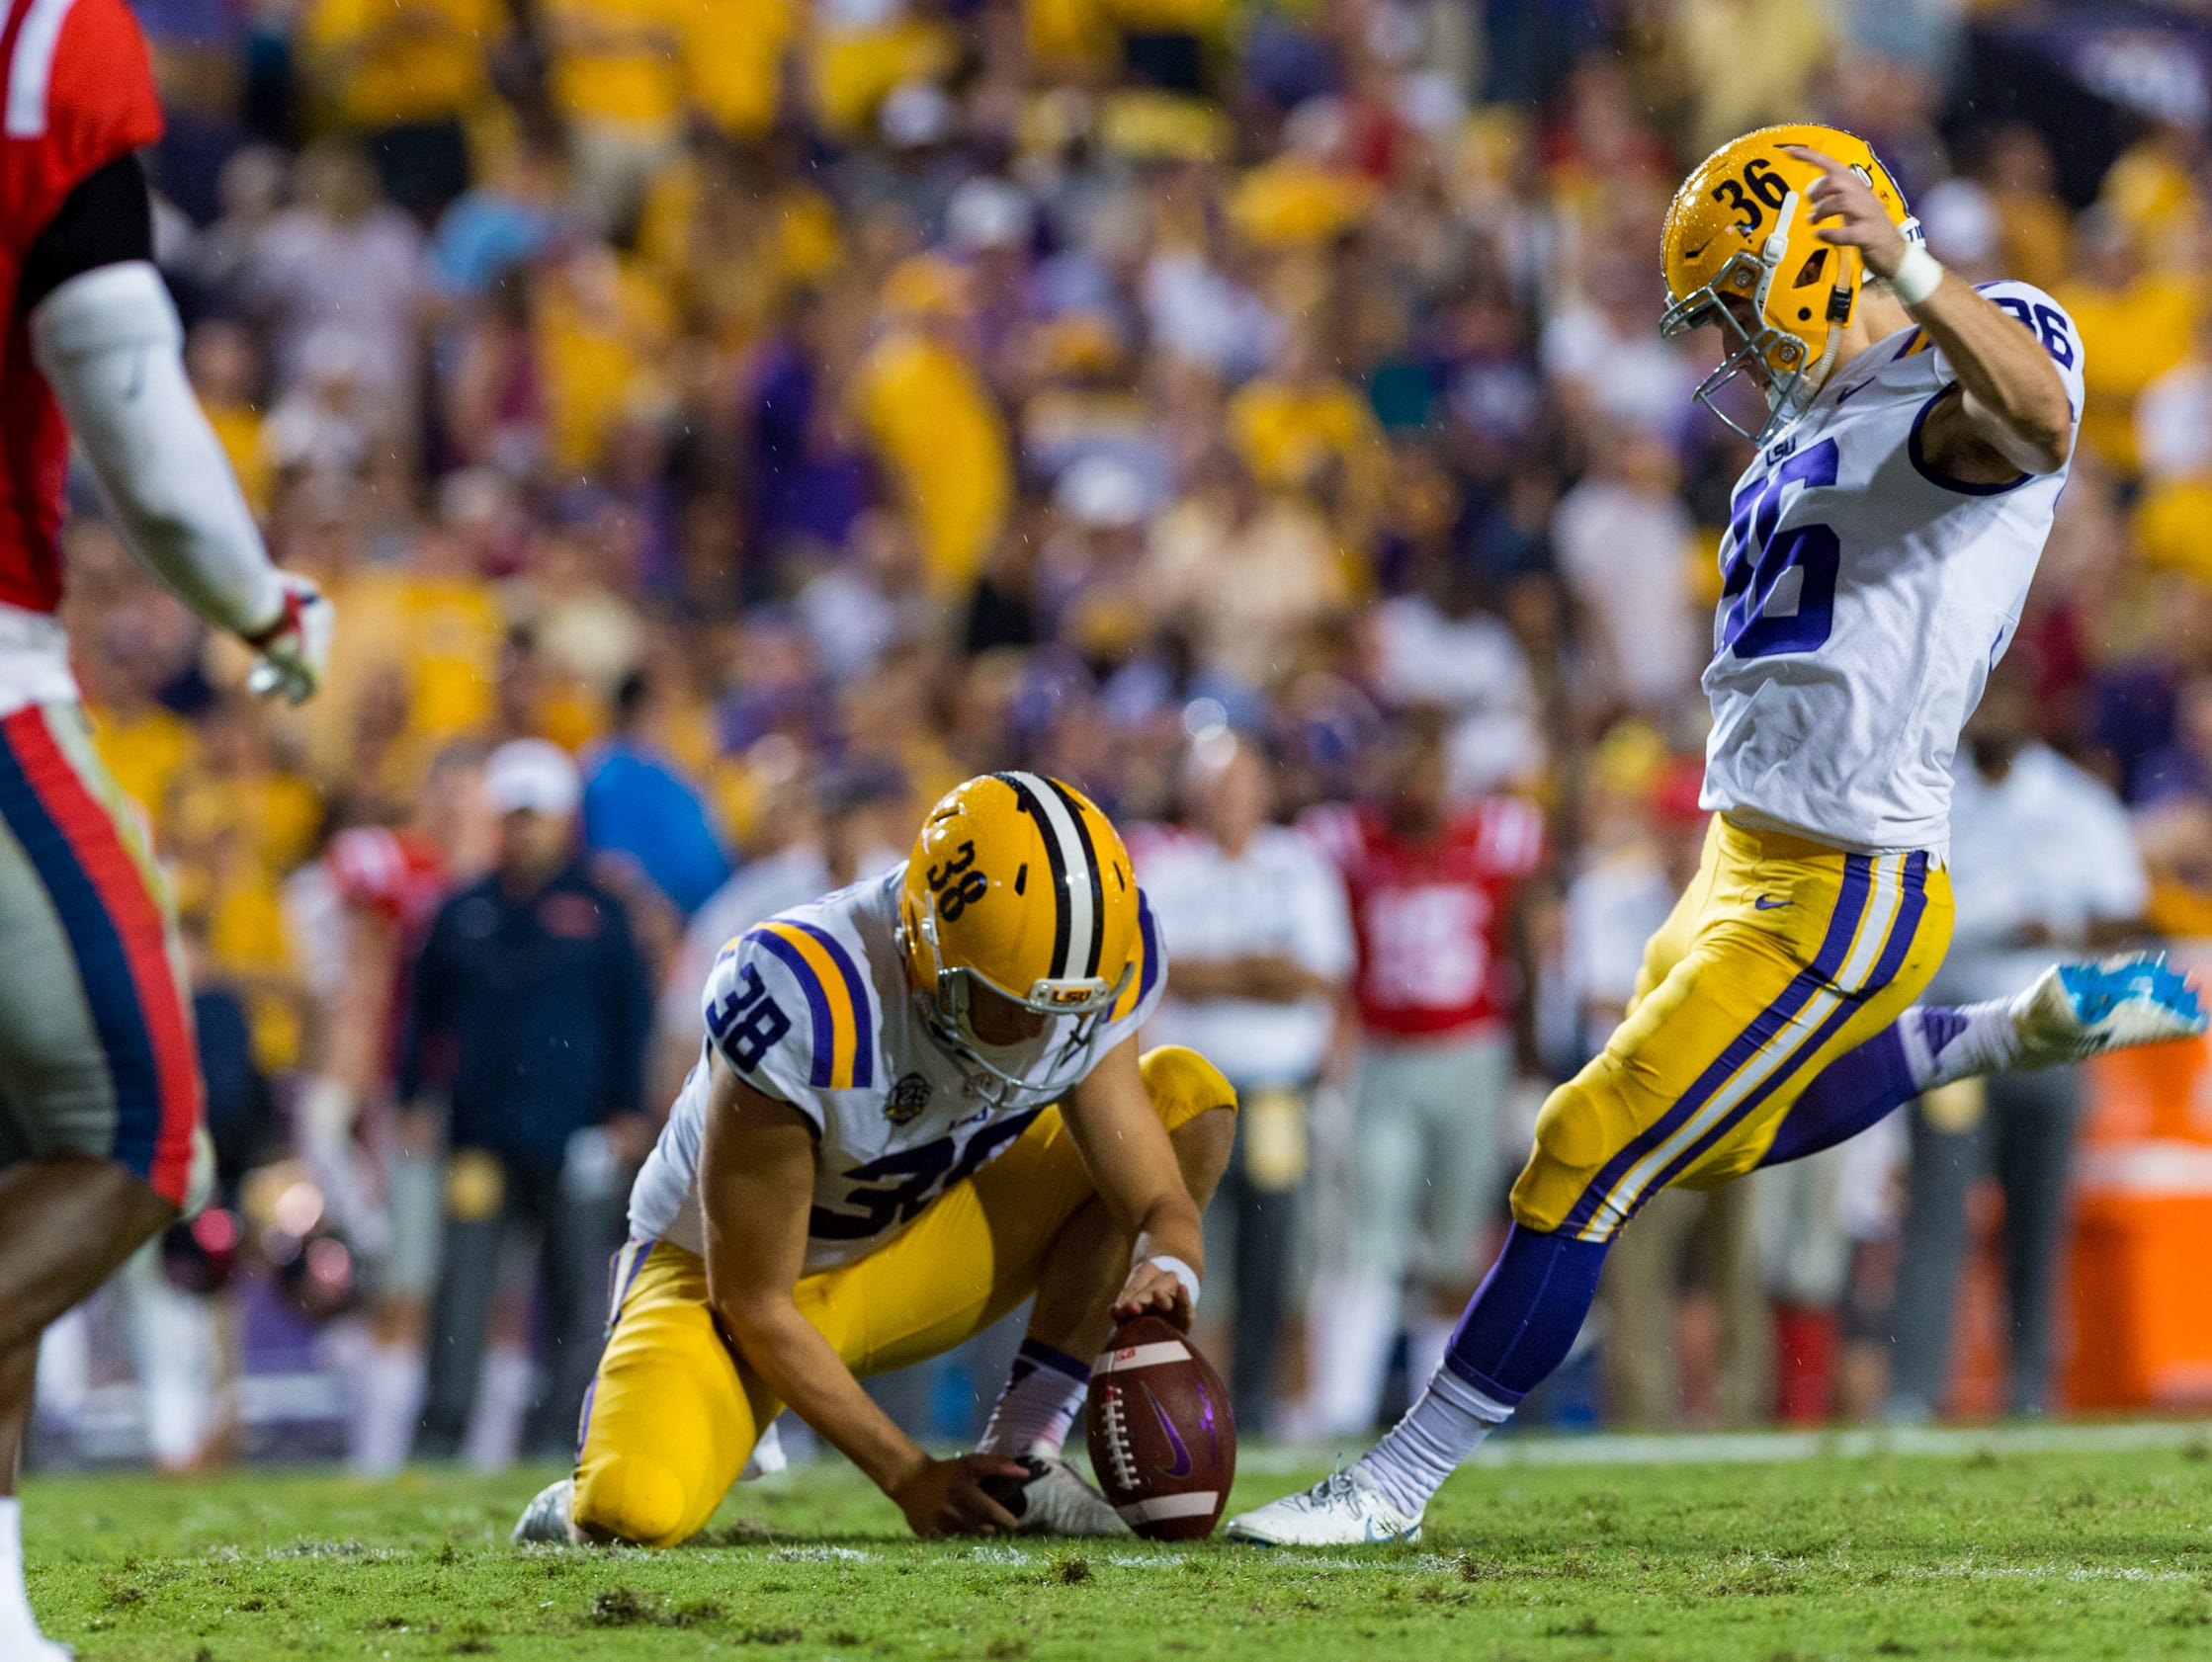 LSU Football Kicker Trolls Auburn After LSU Baseball's